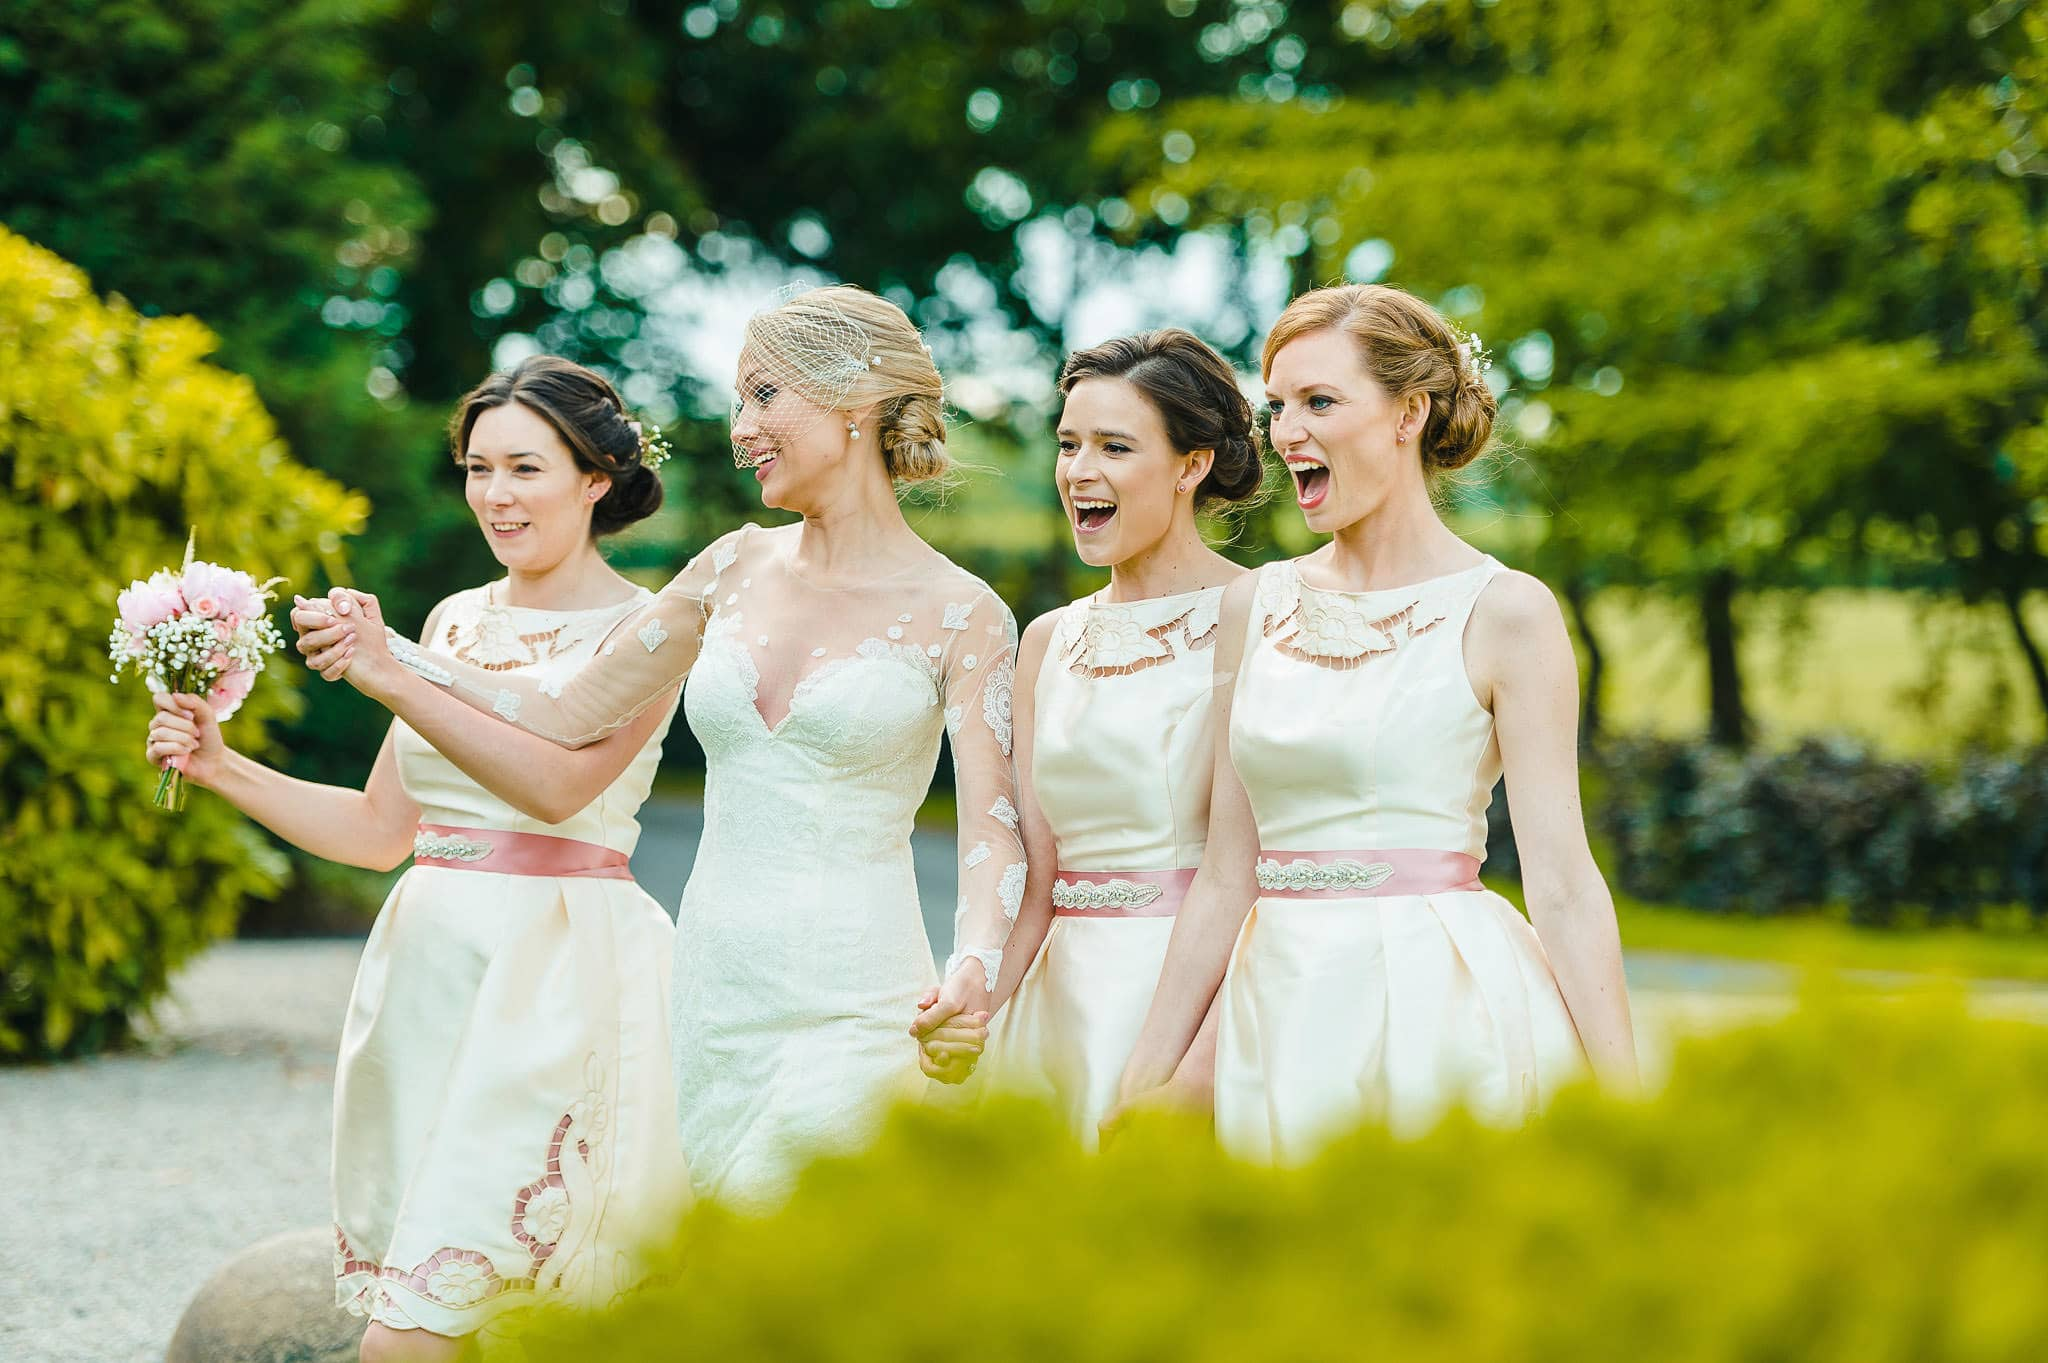 Lemore Manor Wedding Photographer | Hannah and Angus 74